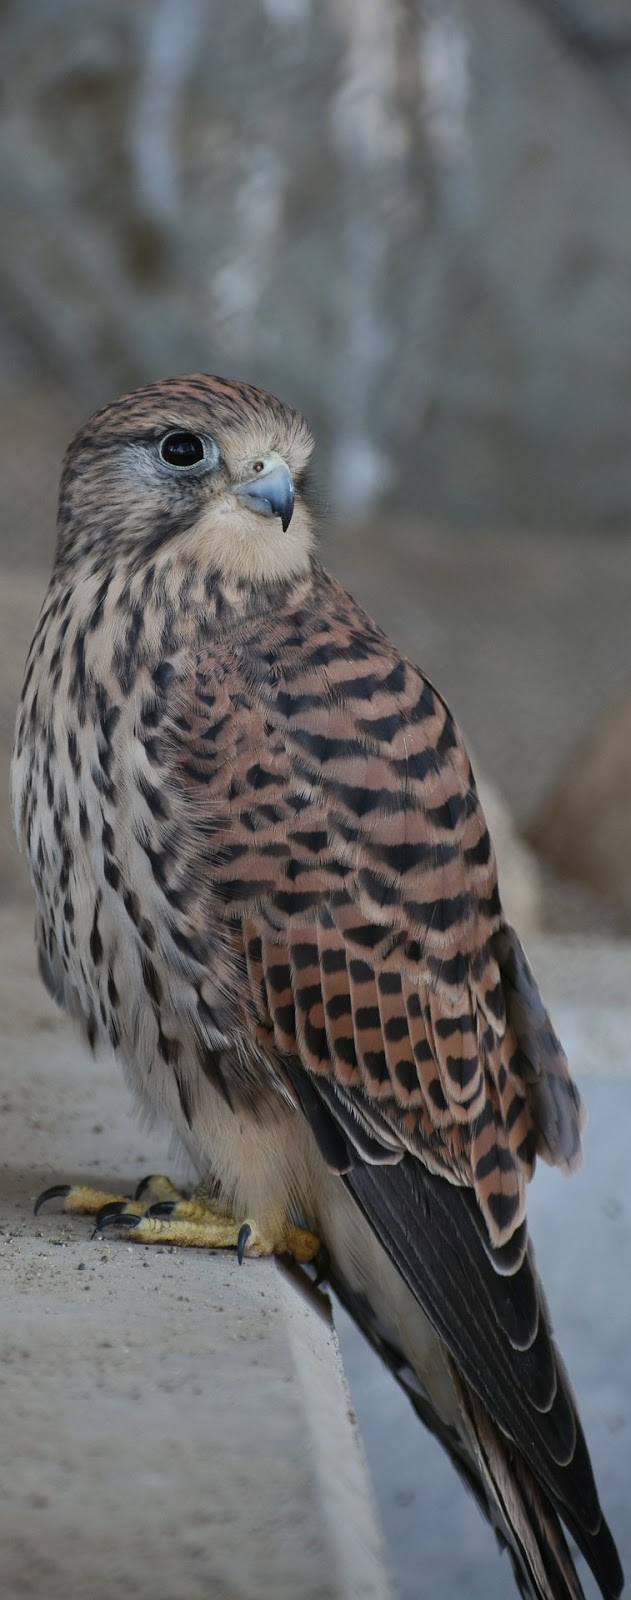 A kestrel bird up close.